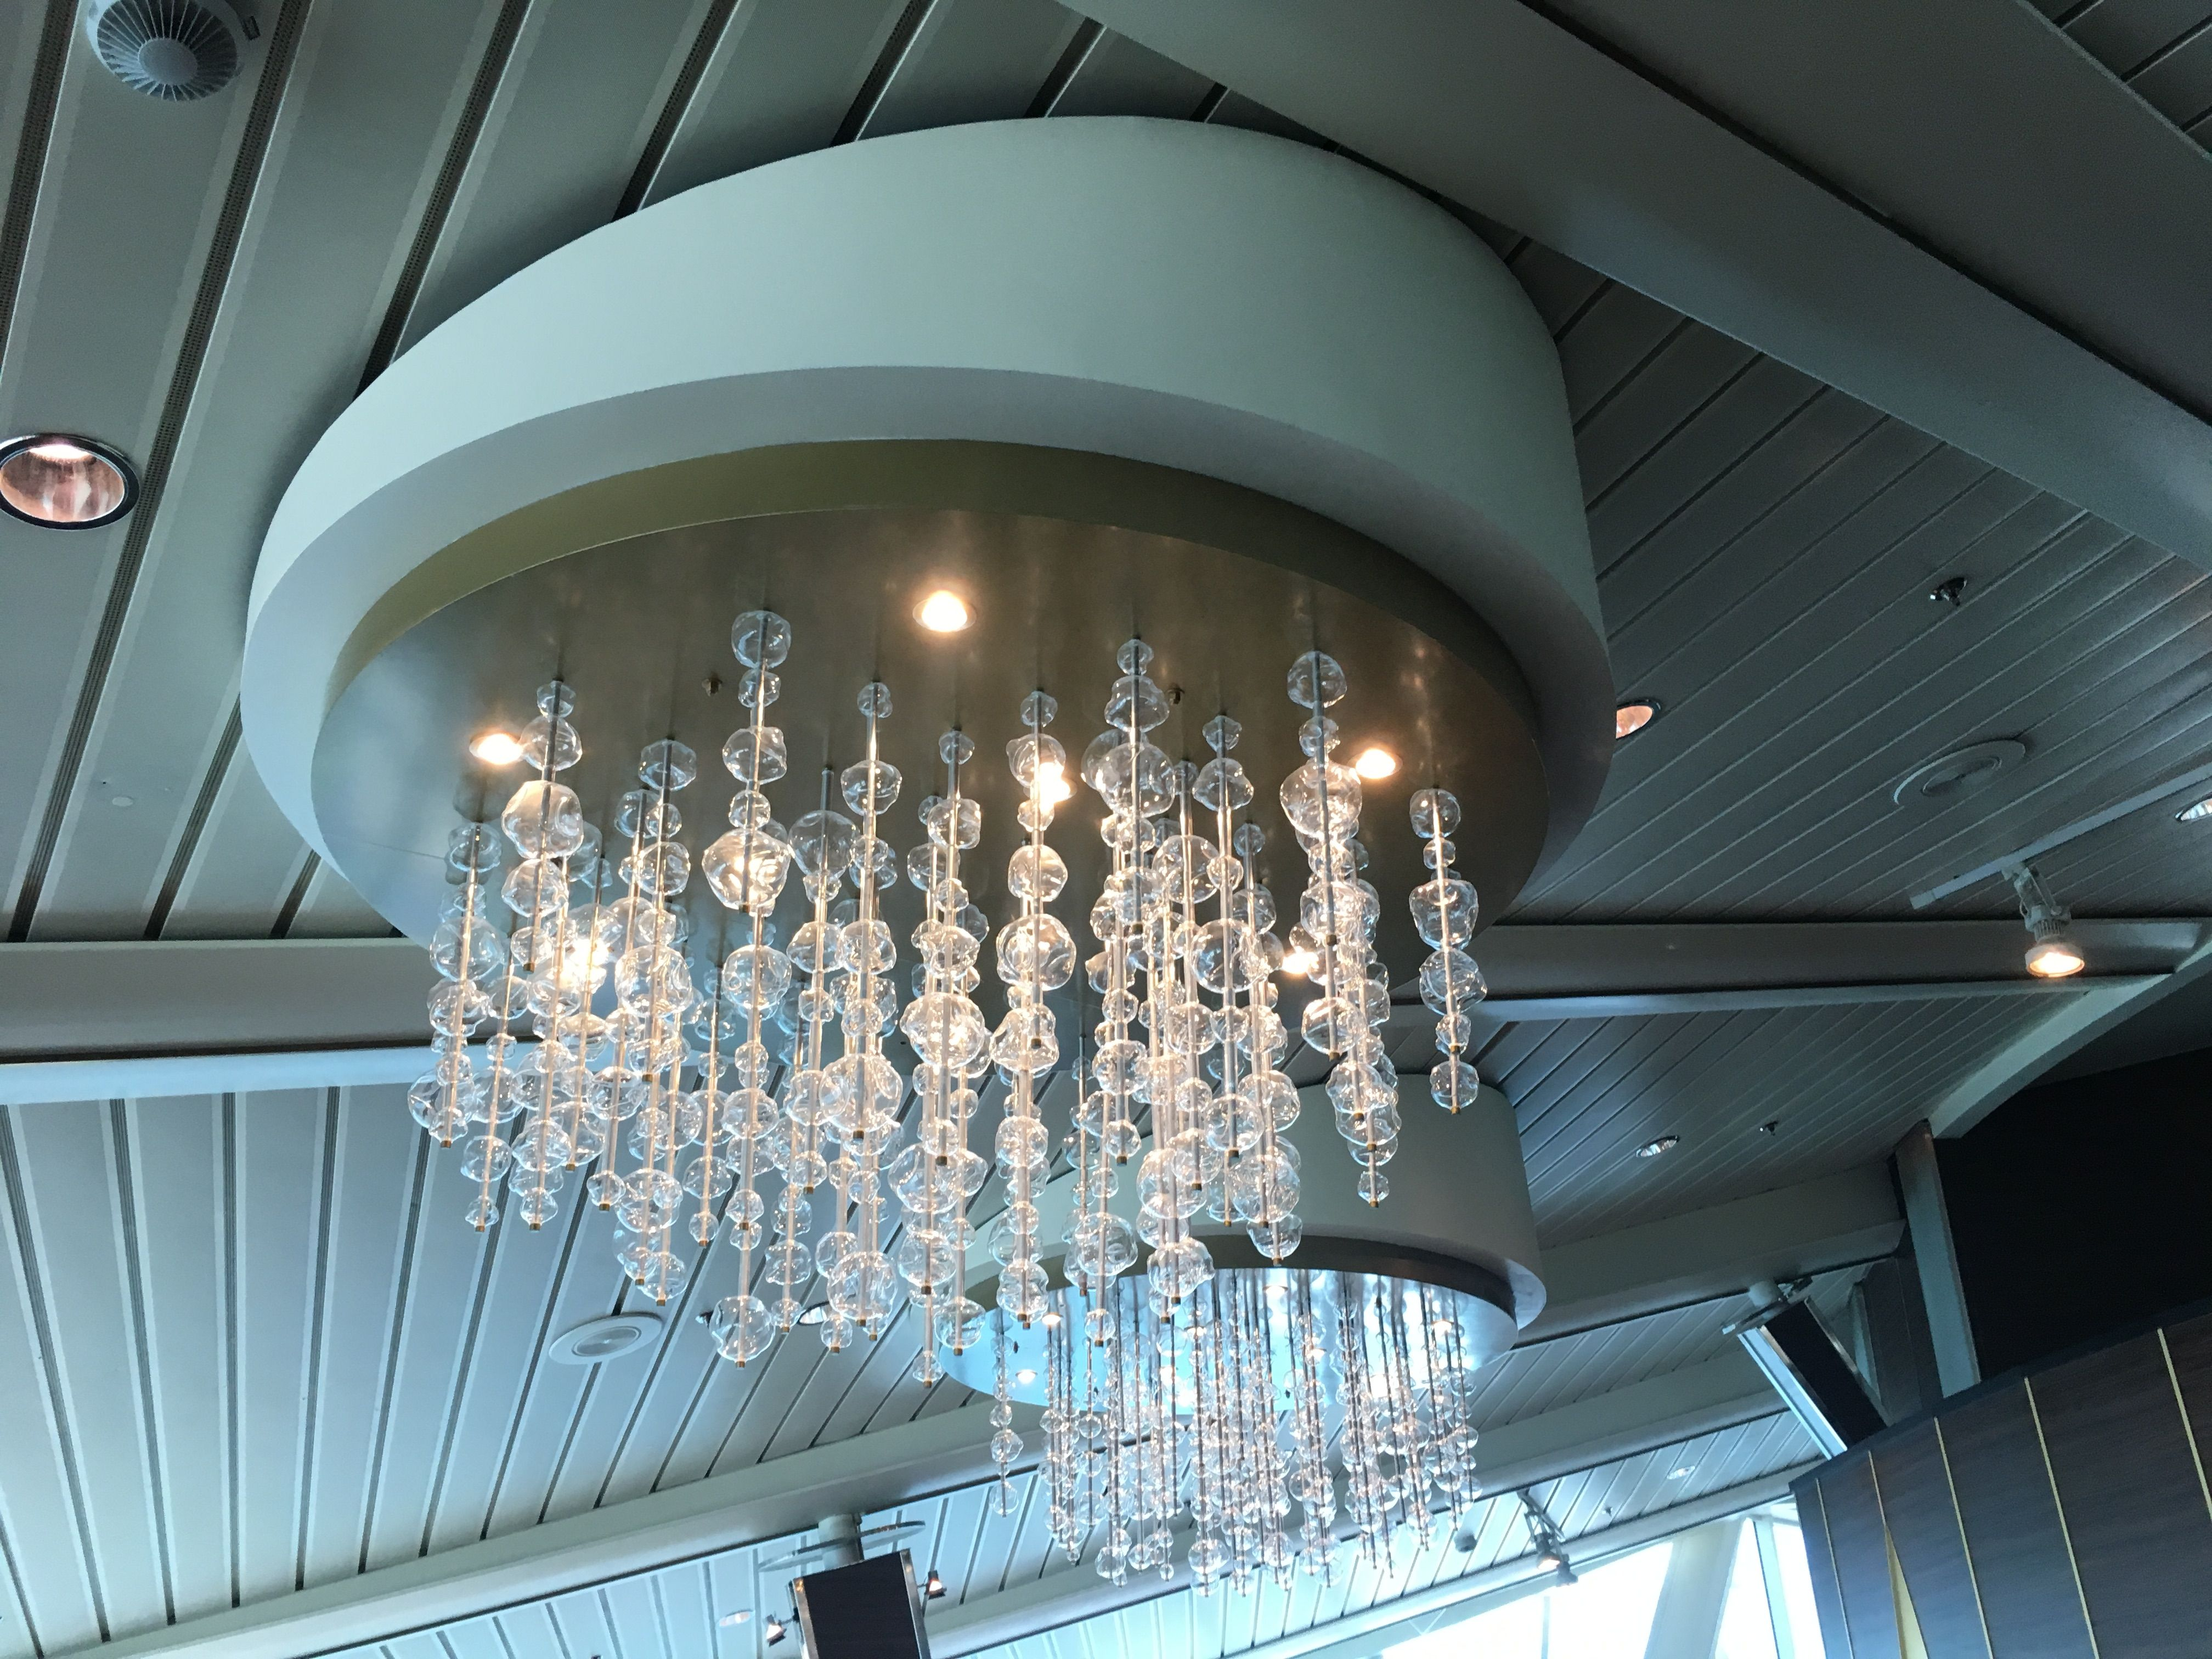 Chandelier In Viking Crown Lounge Aboard Royal Caribbean S Vision Of The Seas 10 23 17